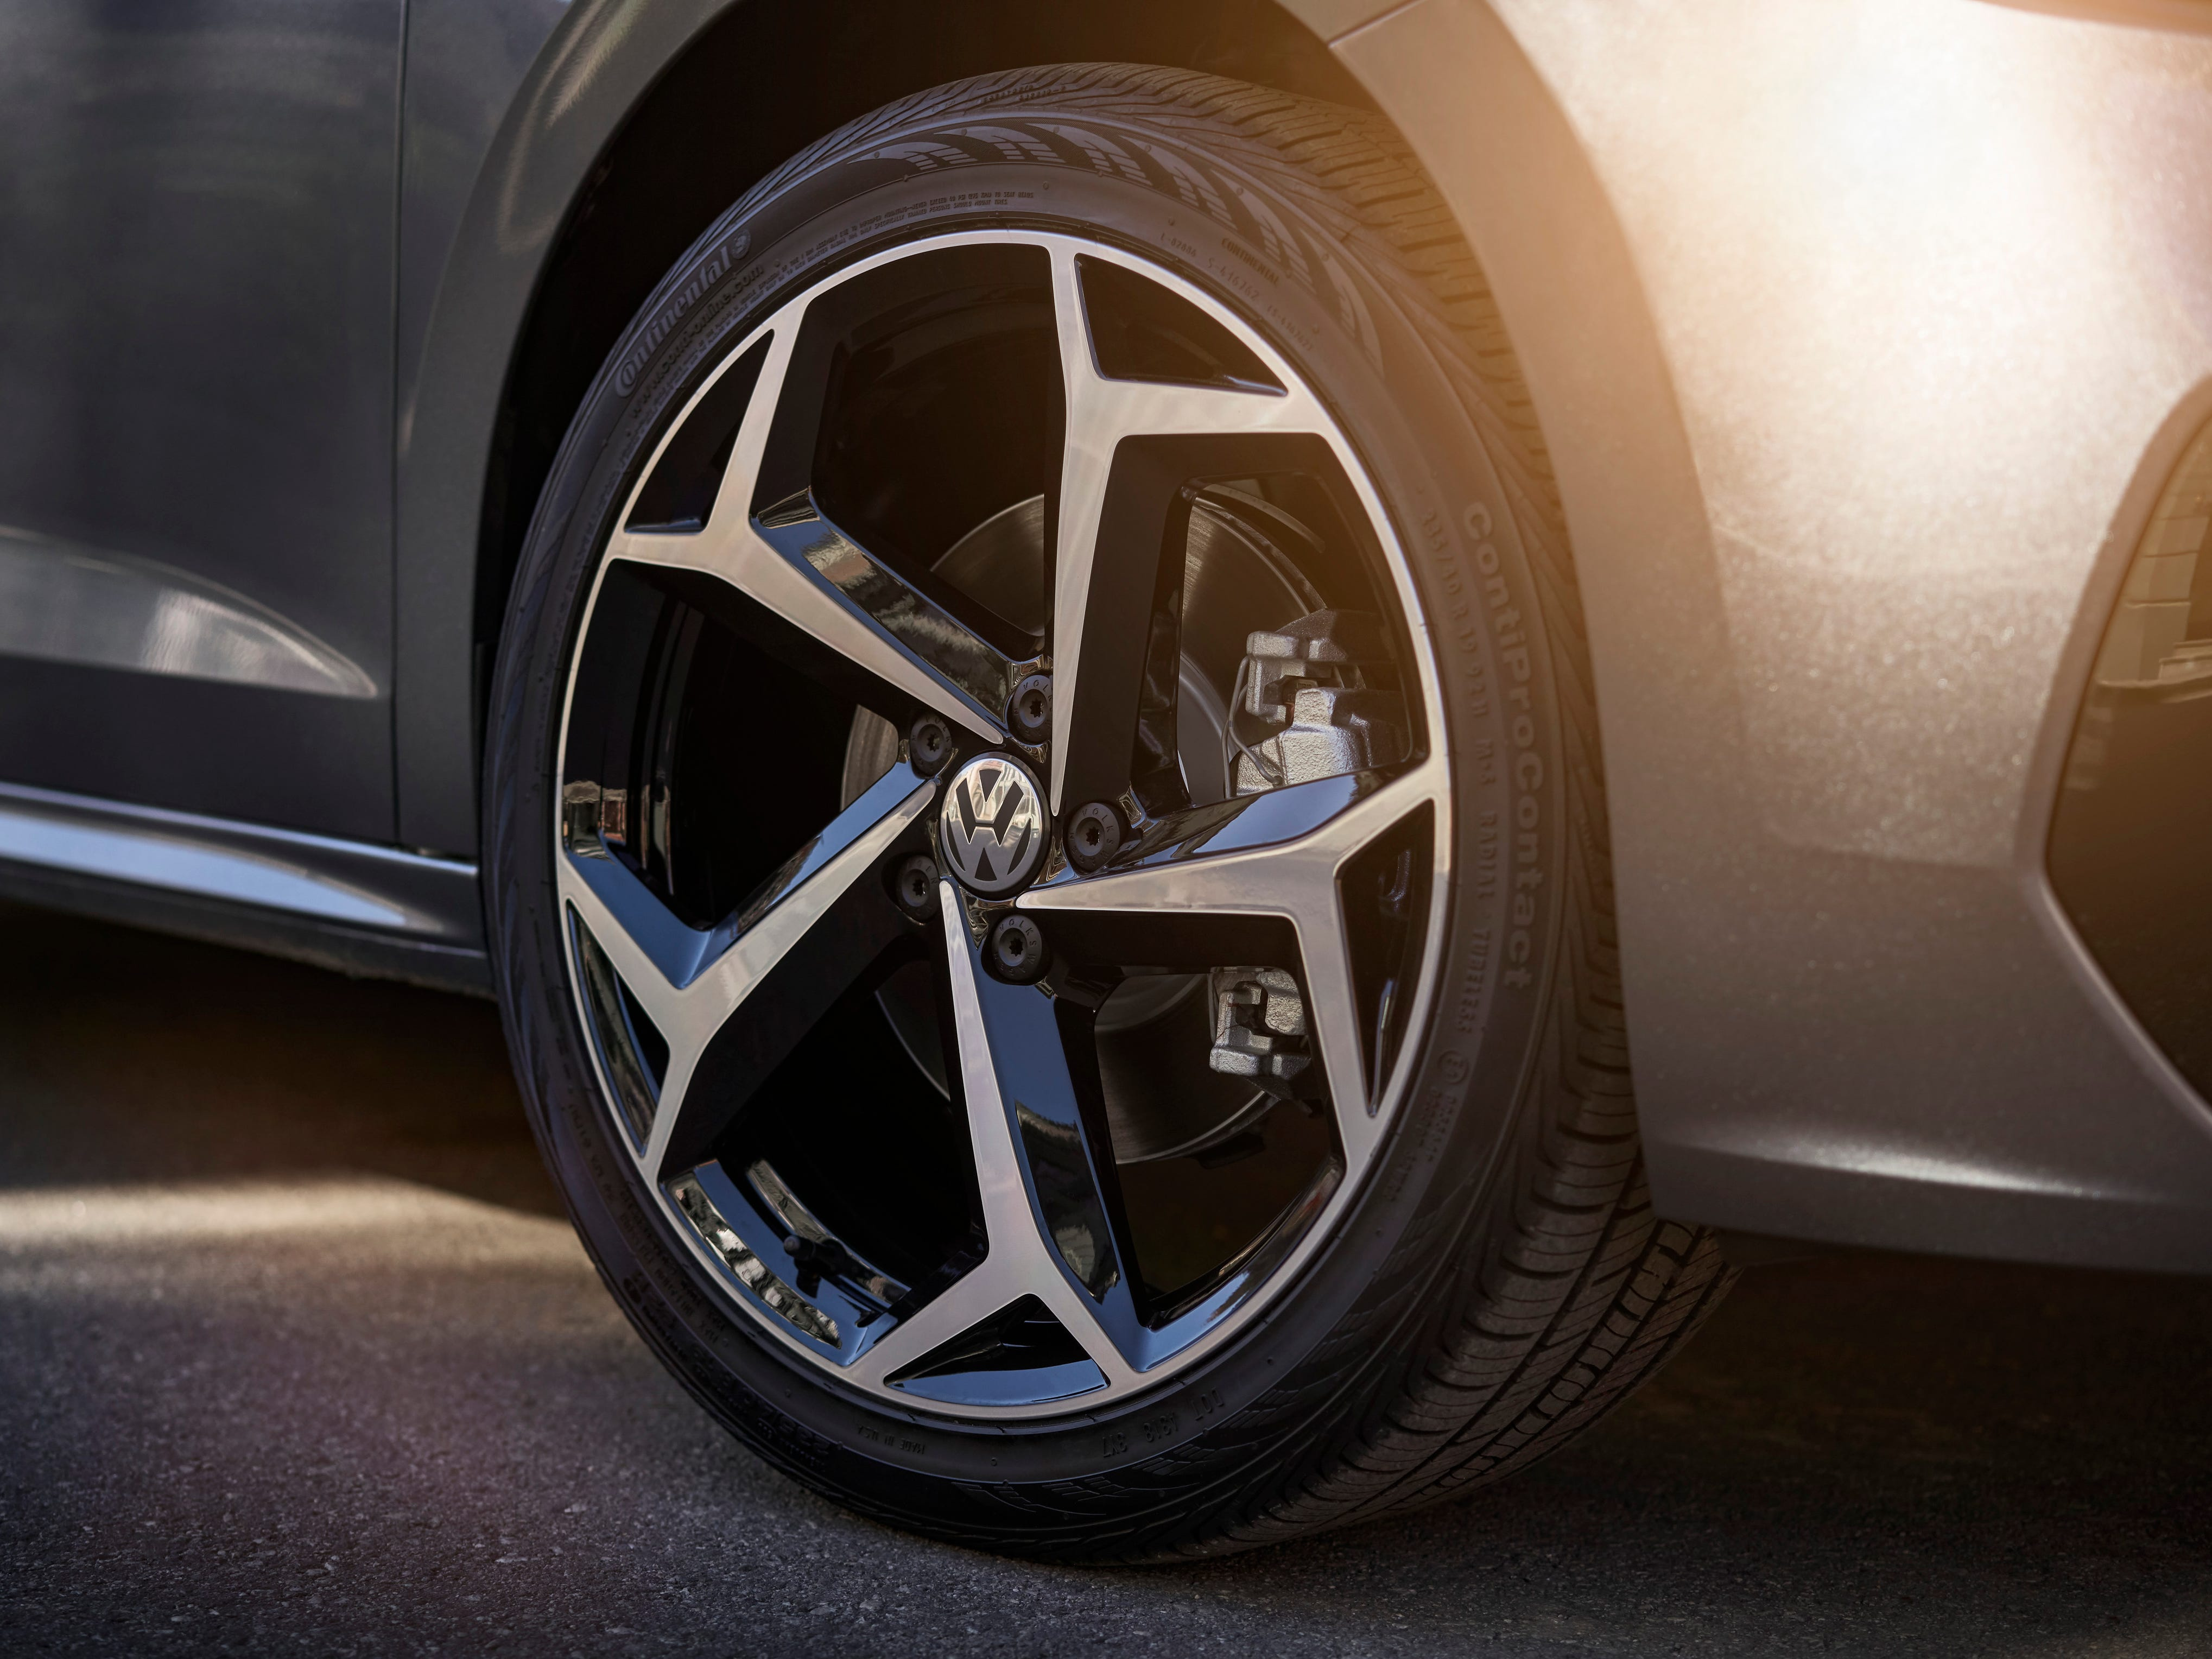 Standard 17-inch aluminum-alloy wheels enhance the sophisticated design, and 18- and 19-inch wheels are available.